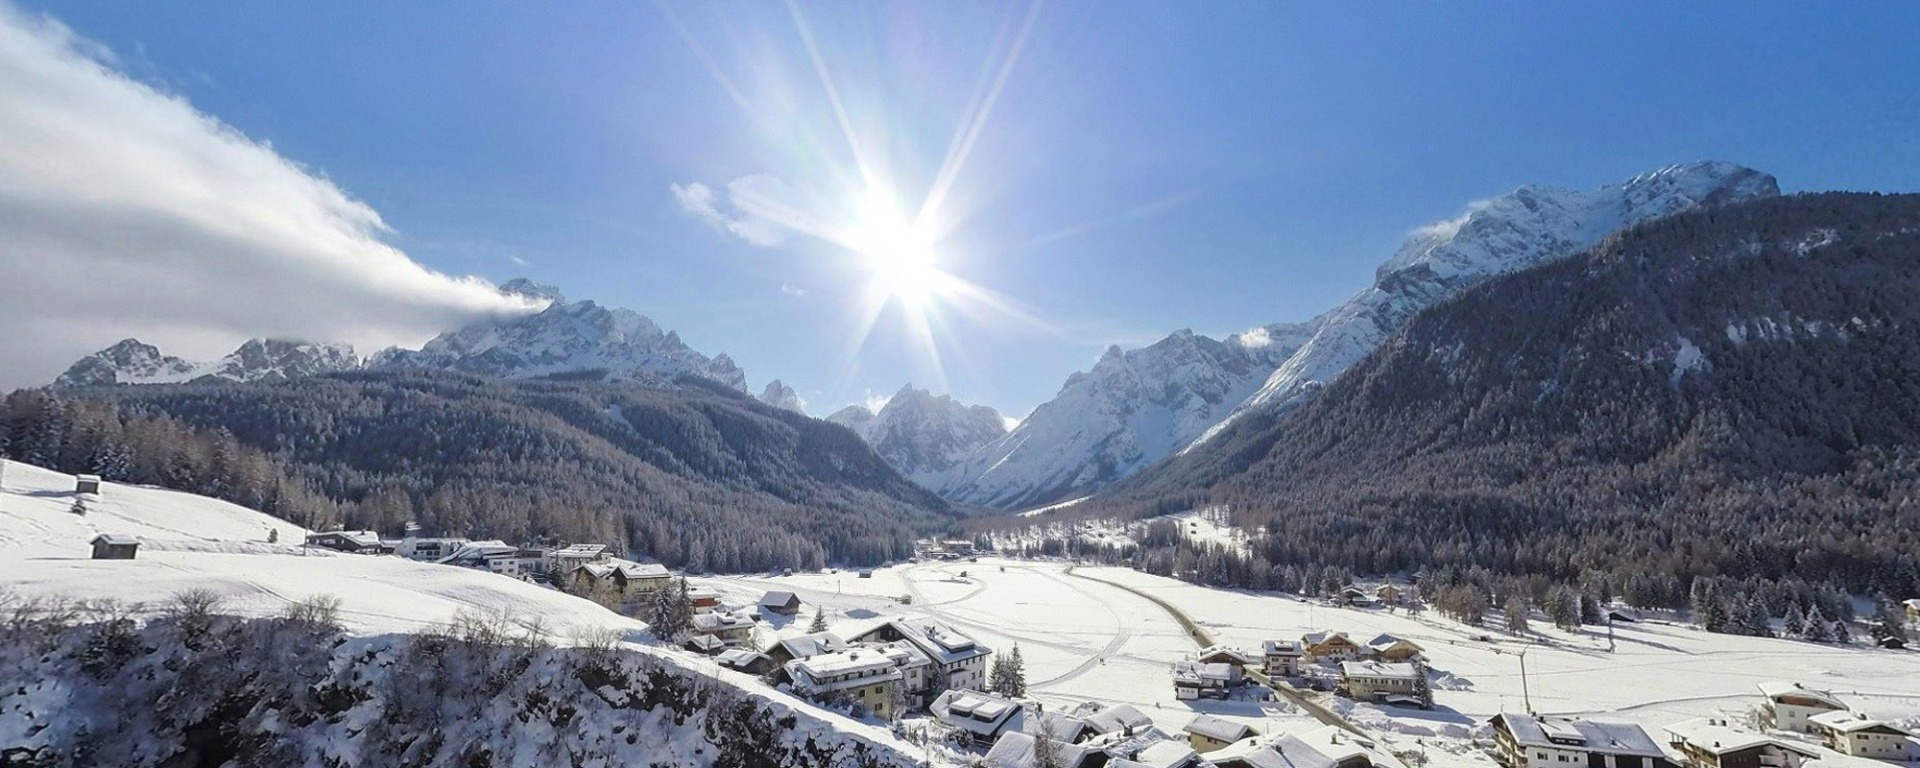 Winter holidays in the Dolomites of Sexten / Sesto